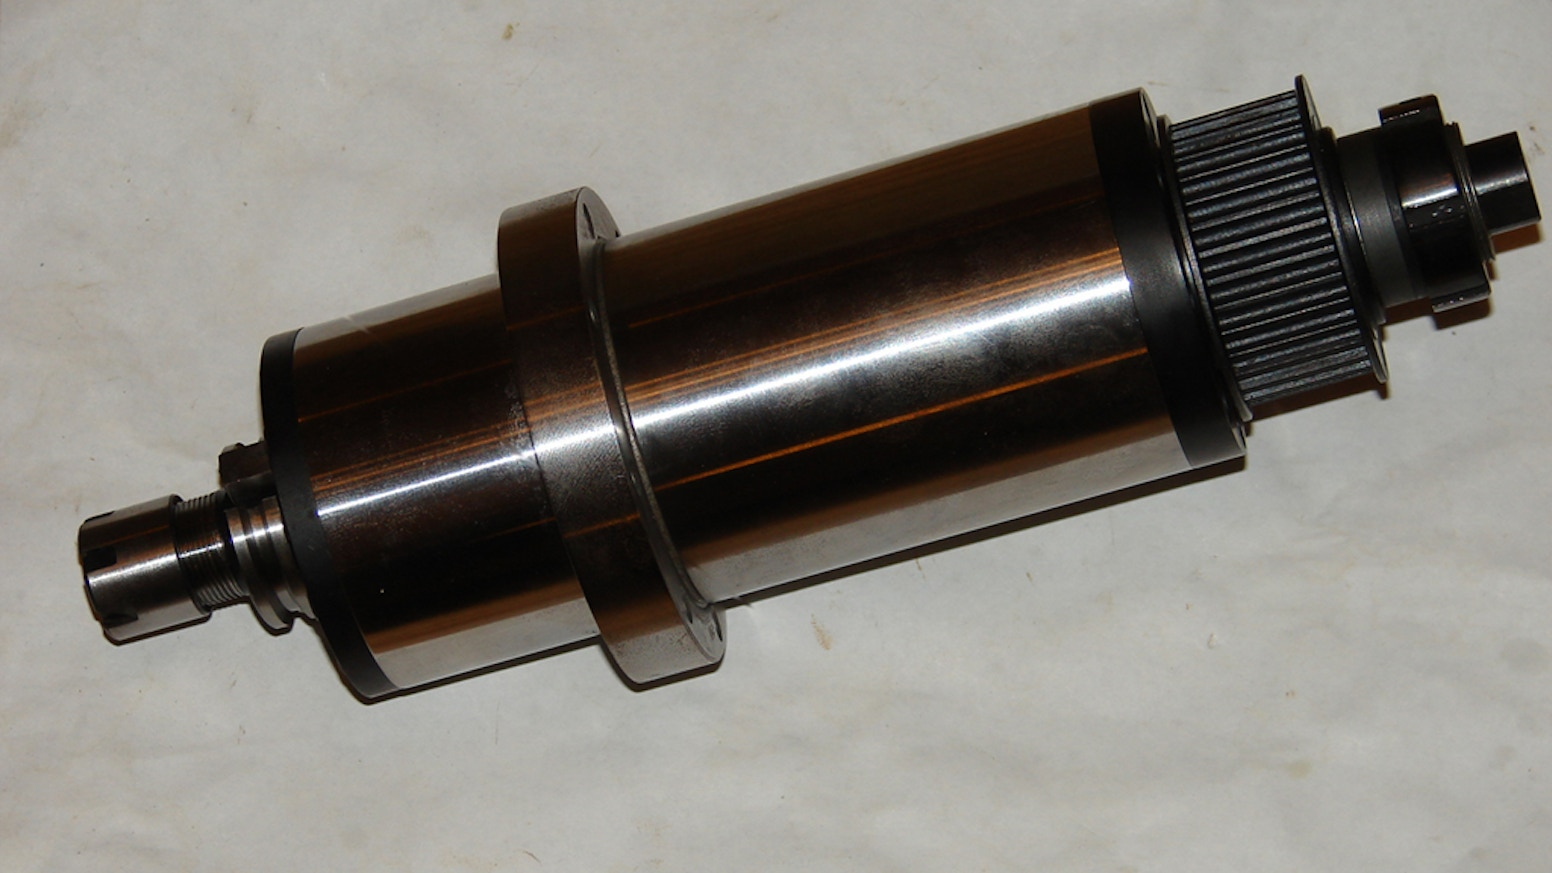 CNC BT15/ISO15 ATC Spindle Cartridge and Spindle Shaft Kit by Dale